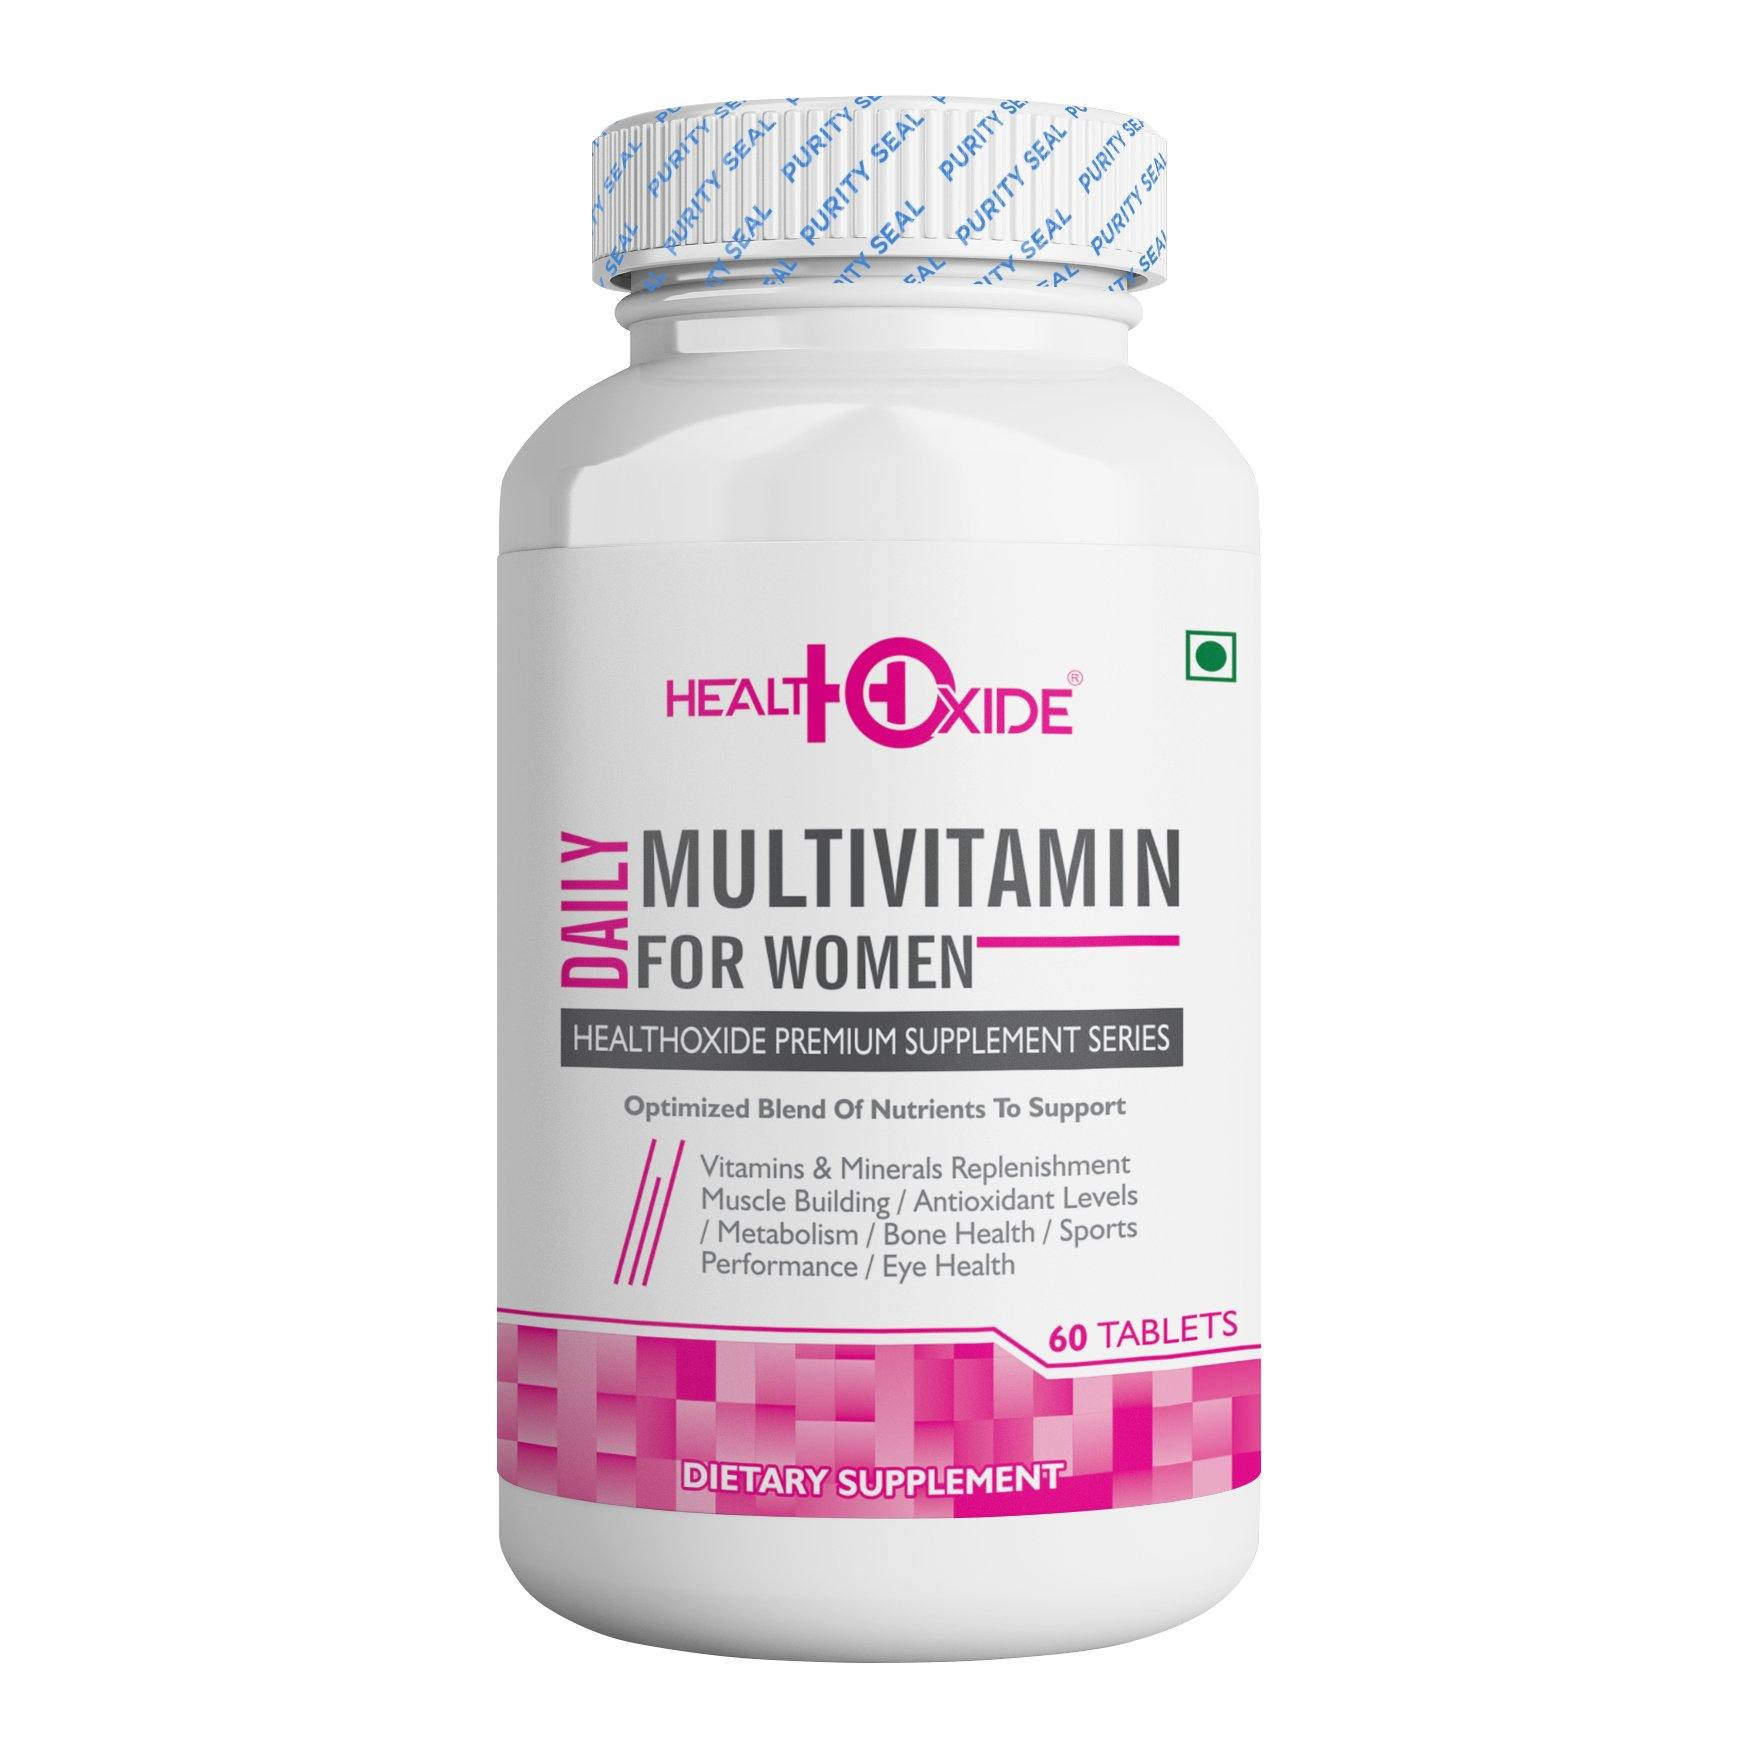 Multivitamins for Women – 60 Veg Tablets - HealthOxide